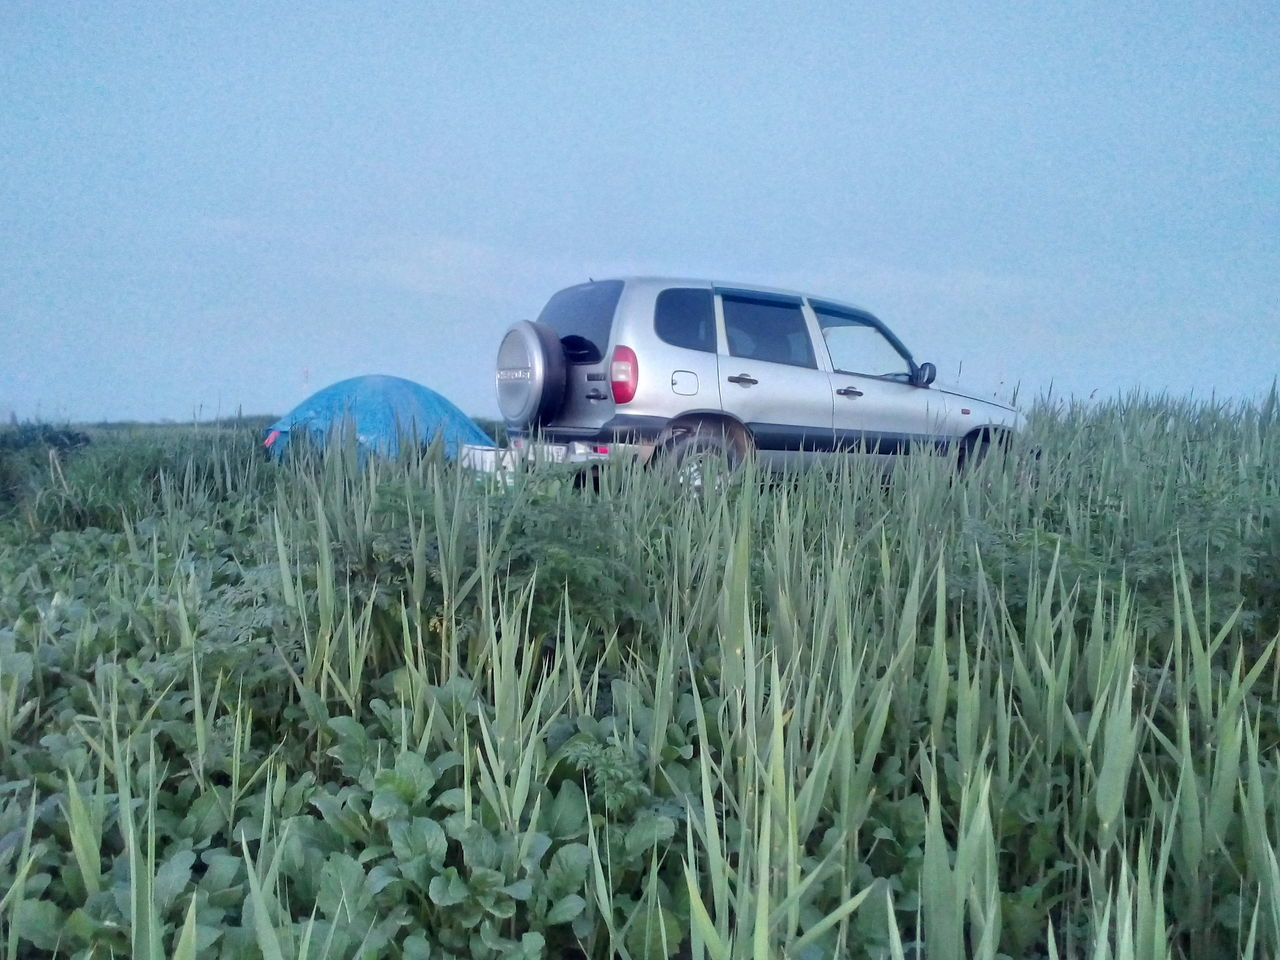 car, field, grass, transportation, growth, day, nature, outdoors, plant, no people, sky, beauty in nature